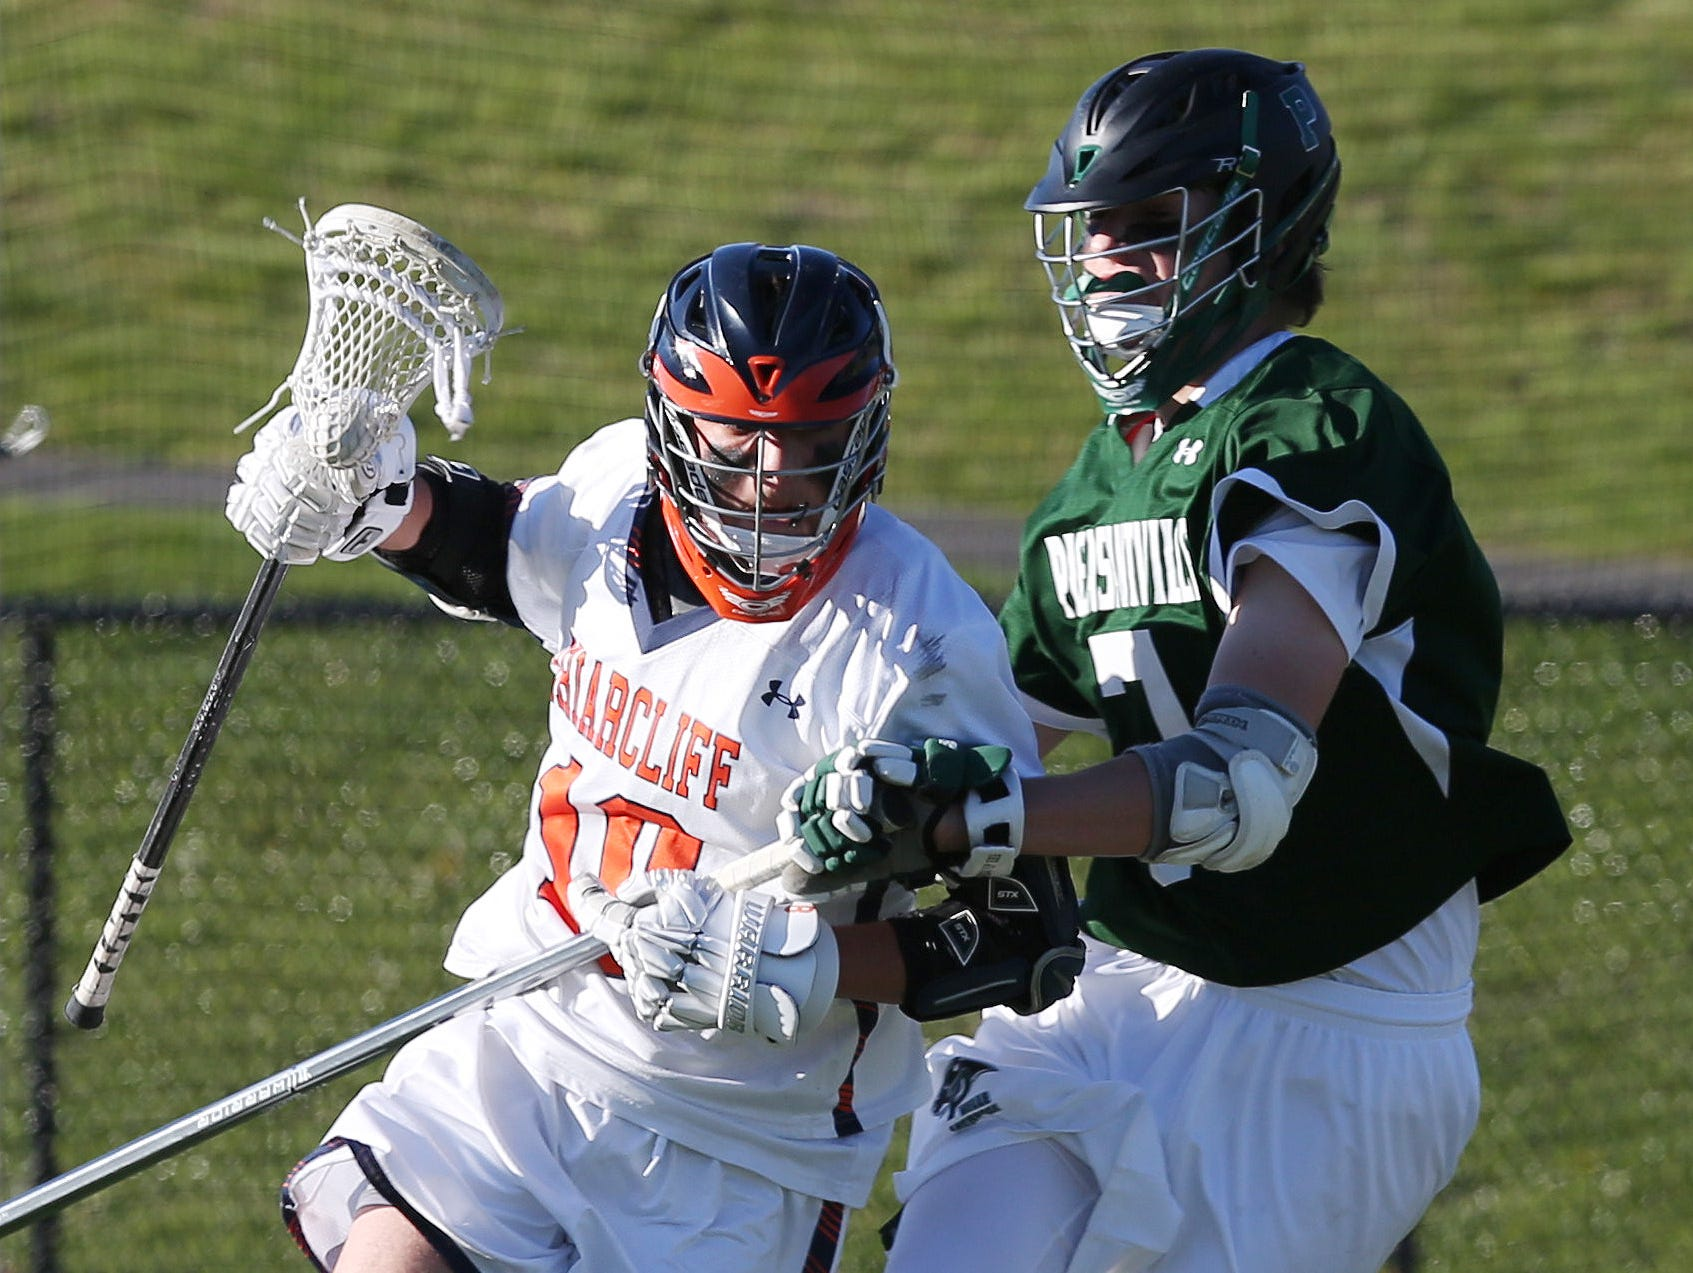 From left, Briracliff's Nicke Cebel (10) tries to get around Pleasantville's Cullen Dell (7) during a lacrosse game at Briarcliff High School April 20, 2016. Briarcliff won the game 8-7.